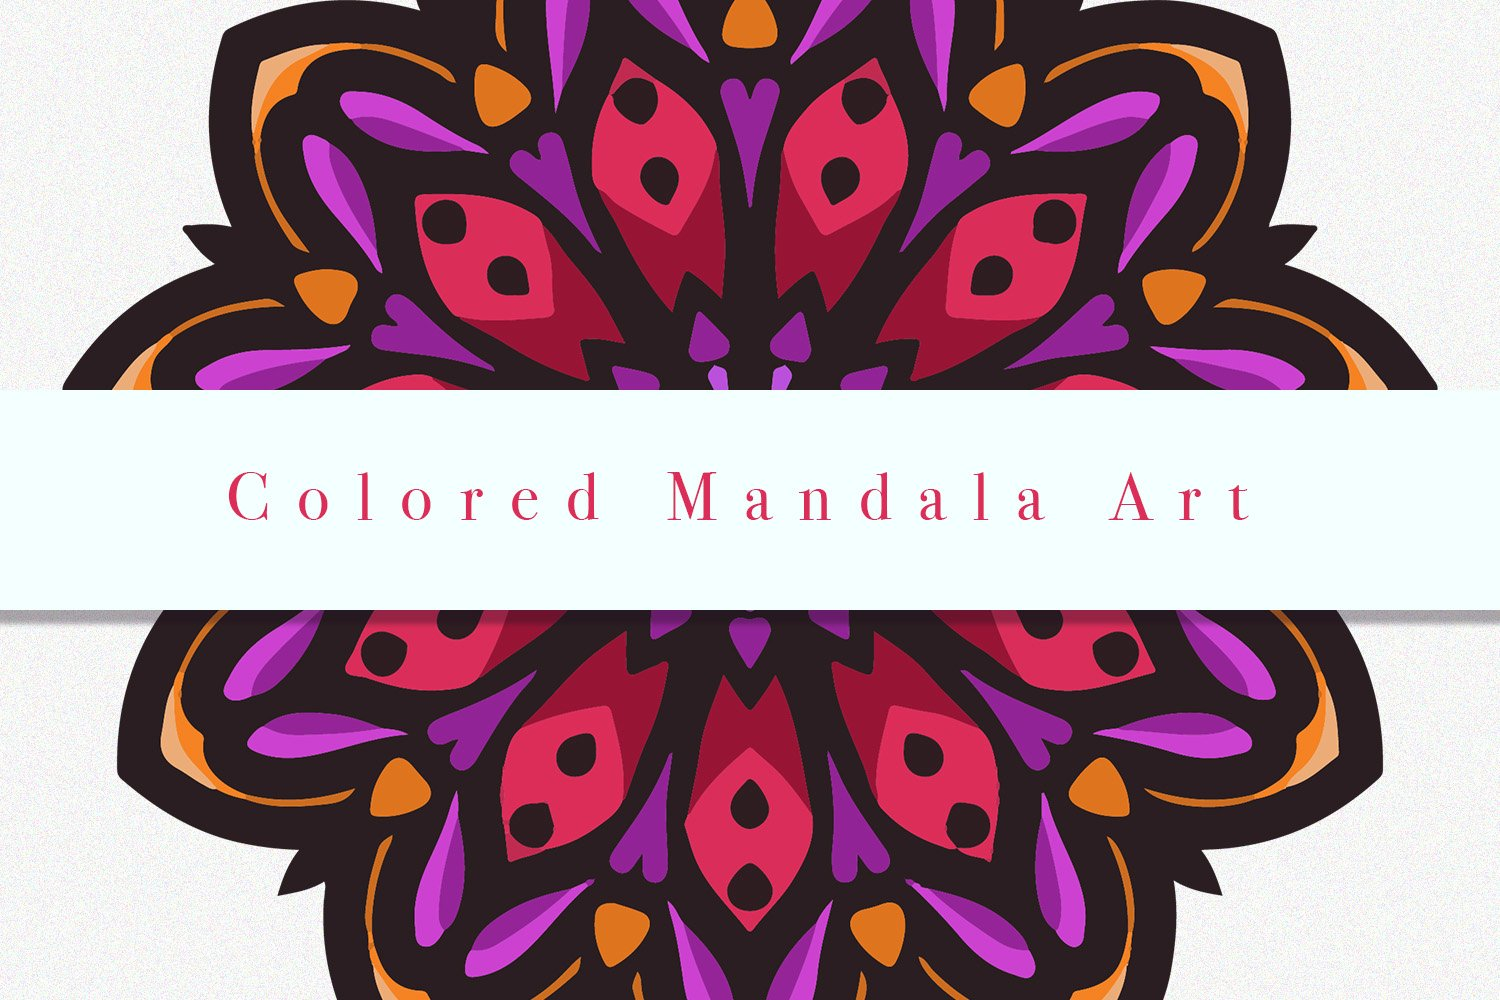 Colored Mandala Art 05 example image 3